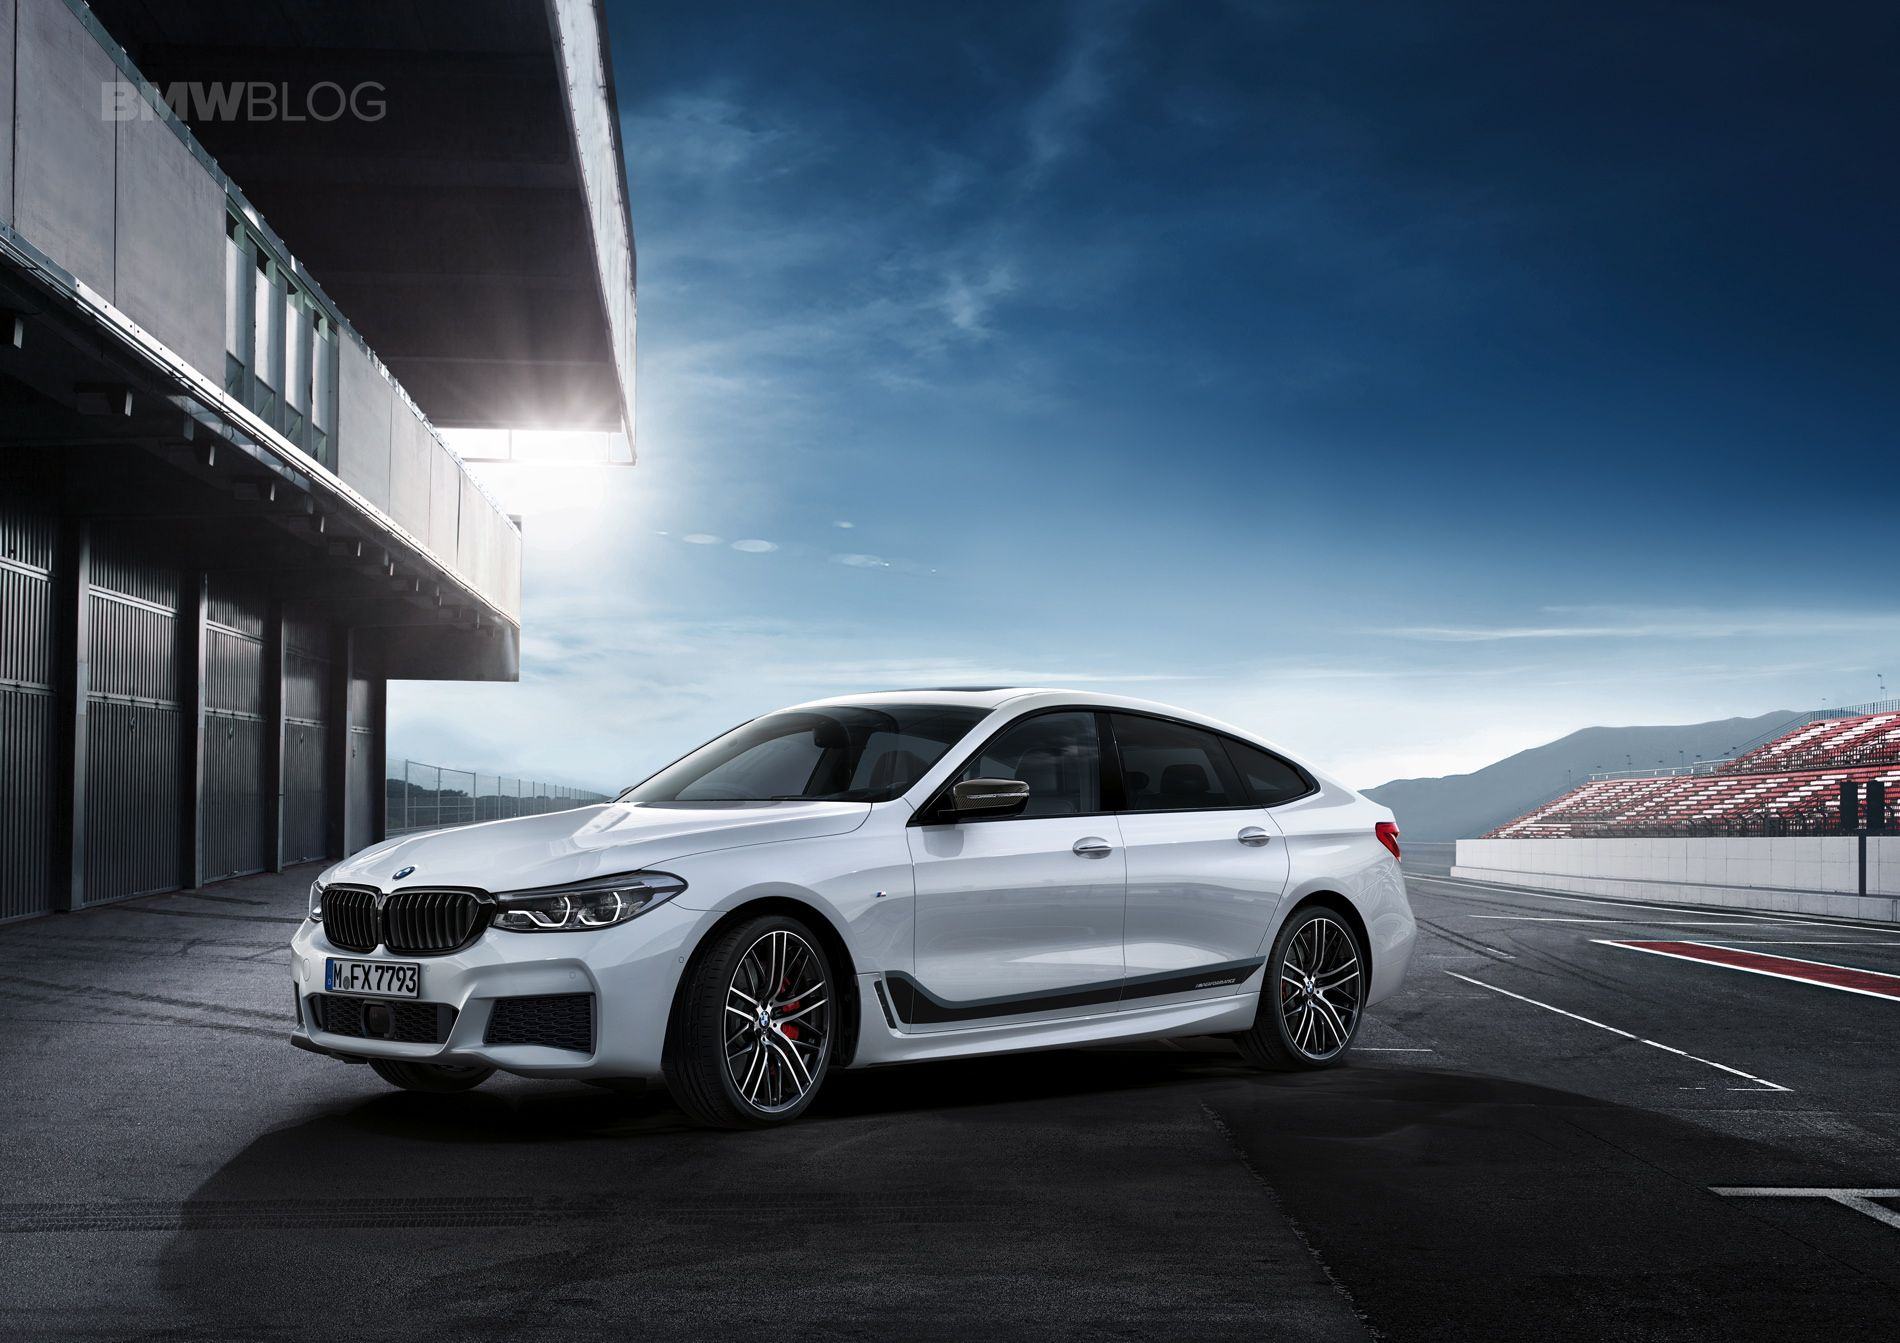 The BMW M Performance Tuning accessory for the new BMW 6 Series GT